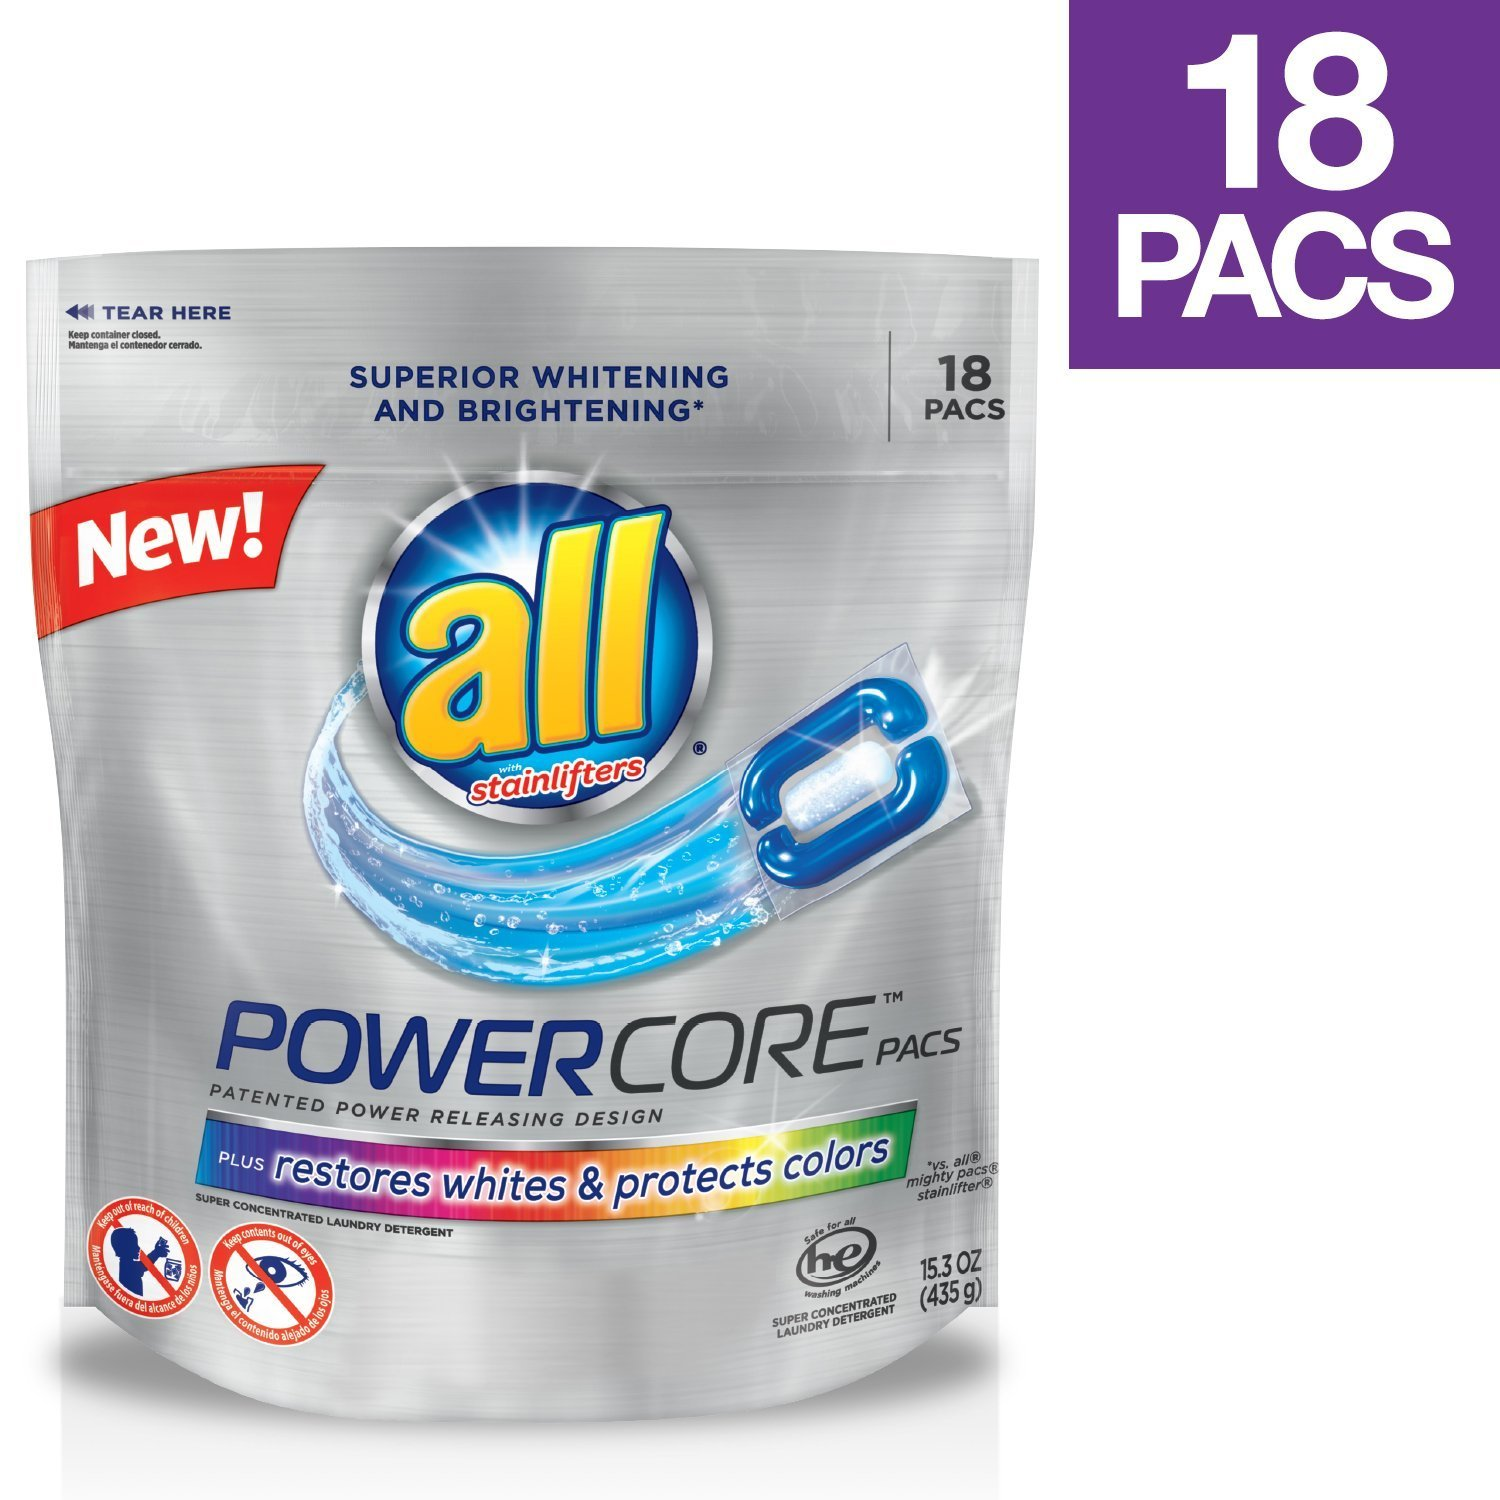 All Powercore Pacs Laundry Detergent Plus Restores Whites & Protects Colors, Pouch, 18 Count